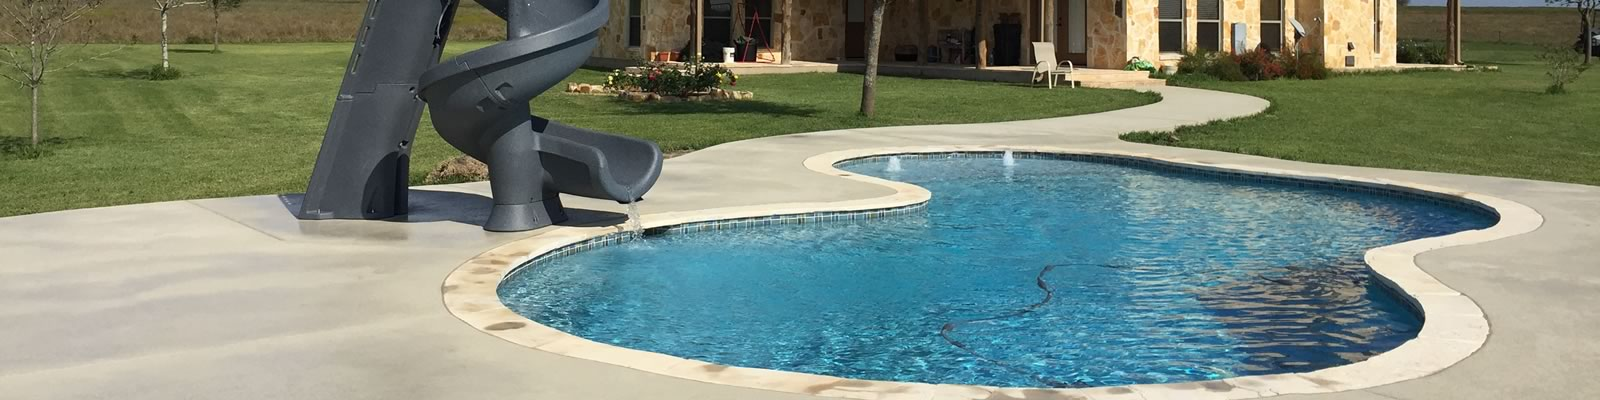 Top water pools design service maintenance chemical for Pool designs victoria